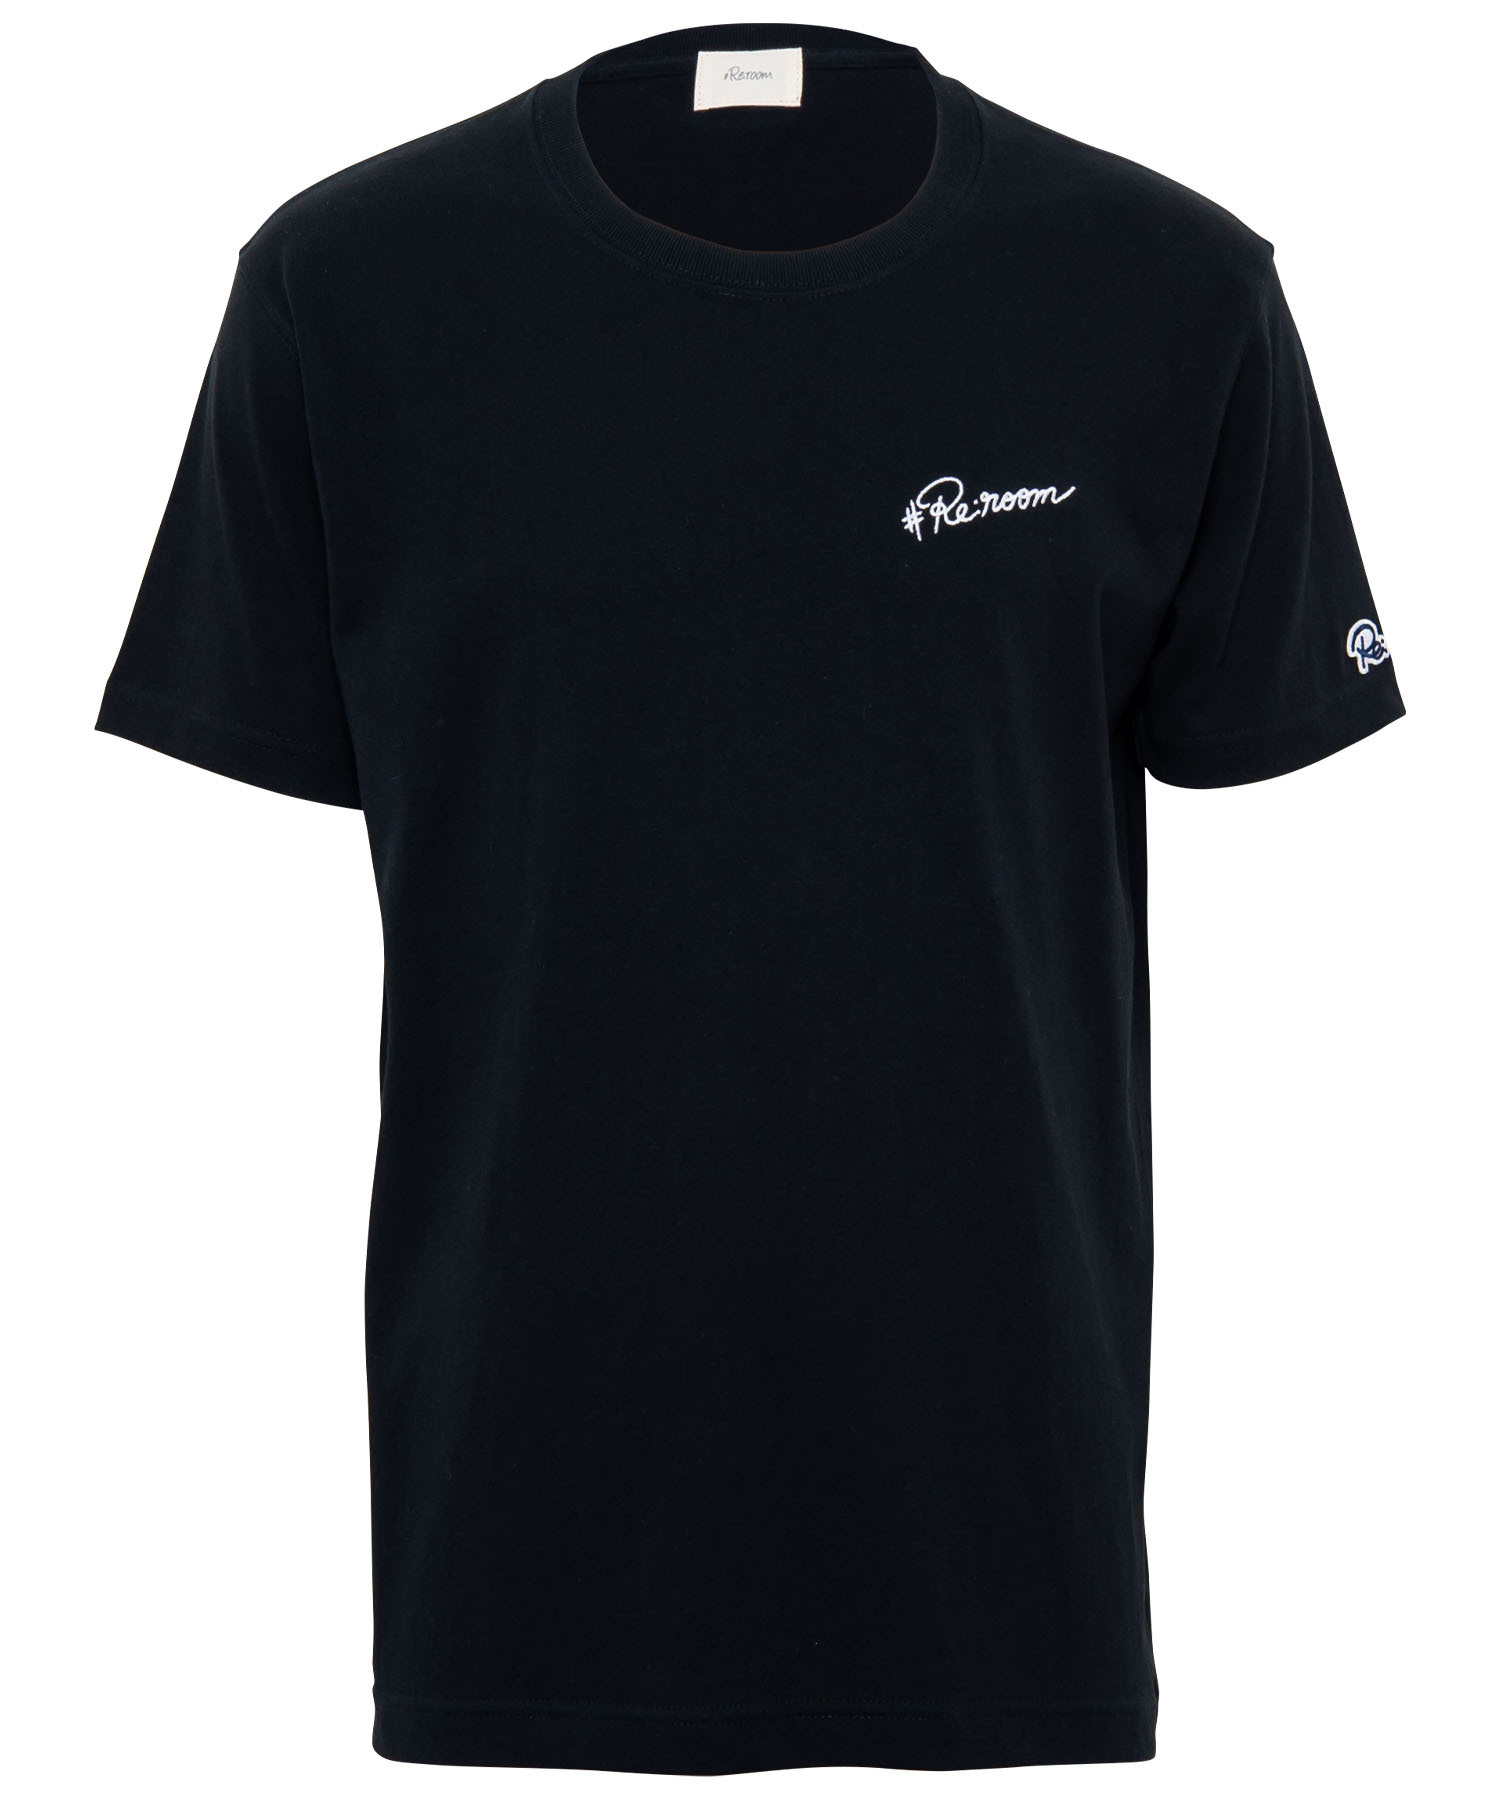 EMBROIDERY LOGO T-shirt[REC395]